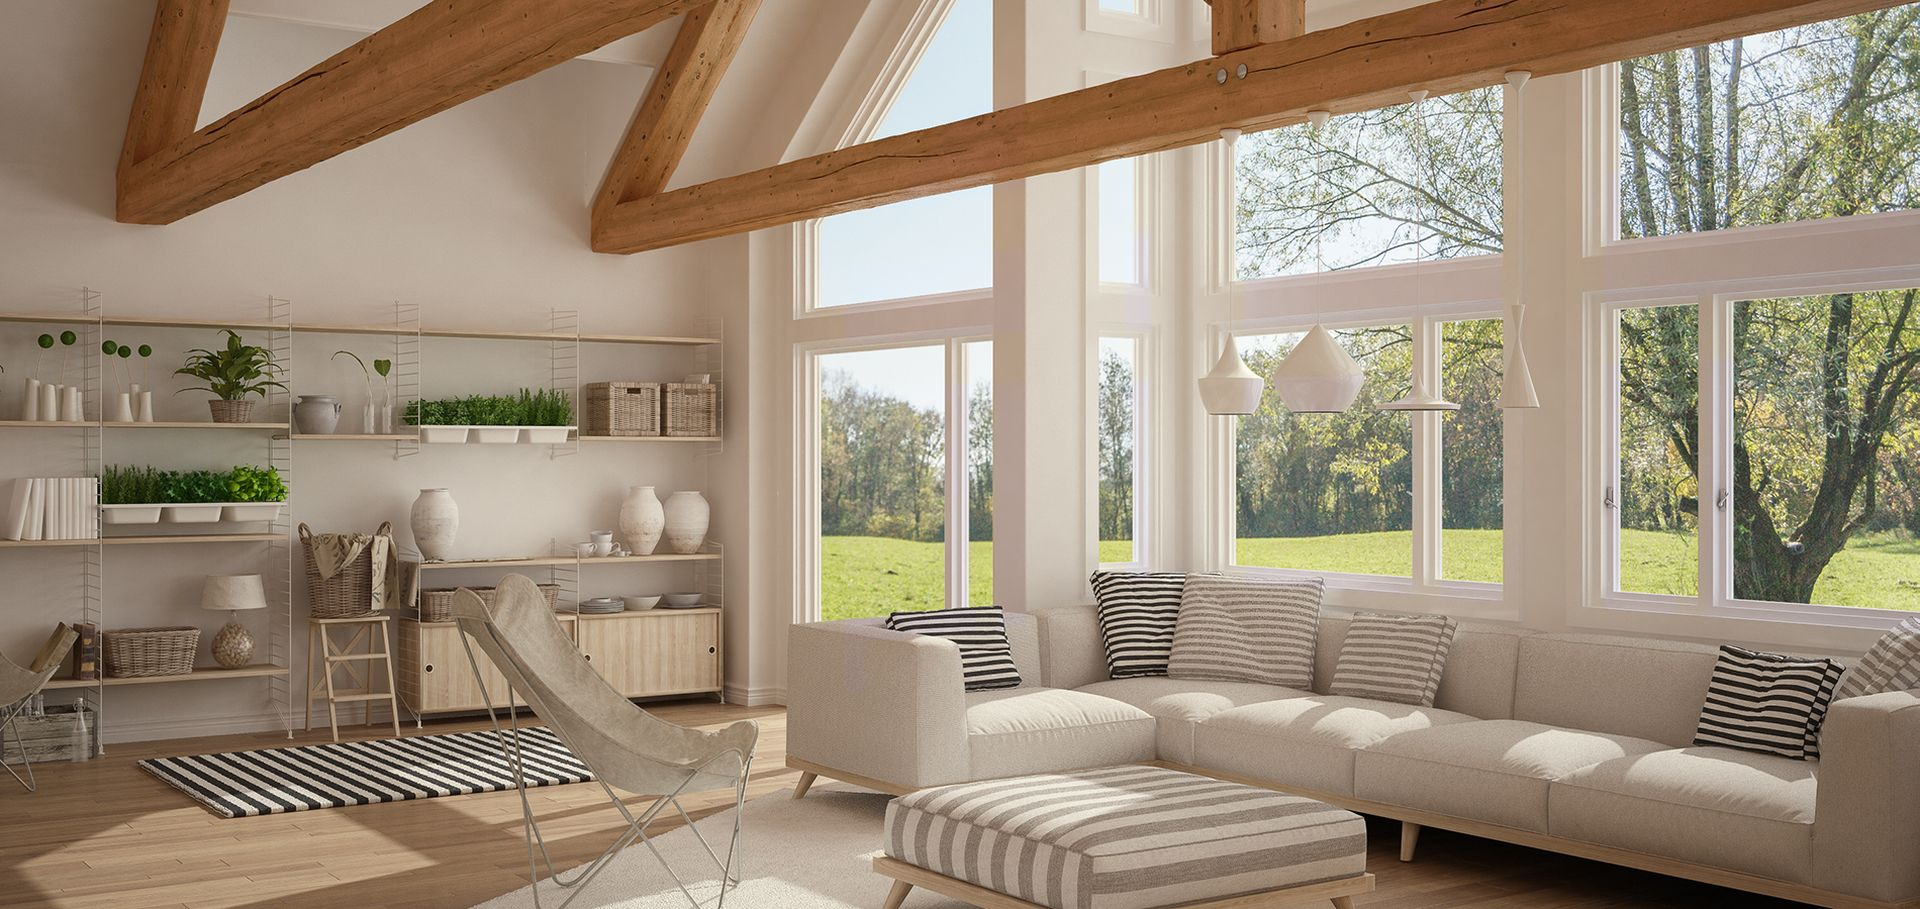 How To Use Bedroom Window Treatments To Beat The Heat This Summer Stoneside